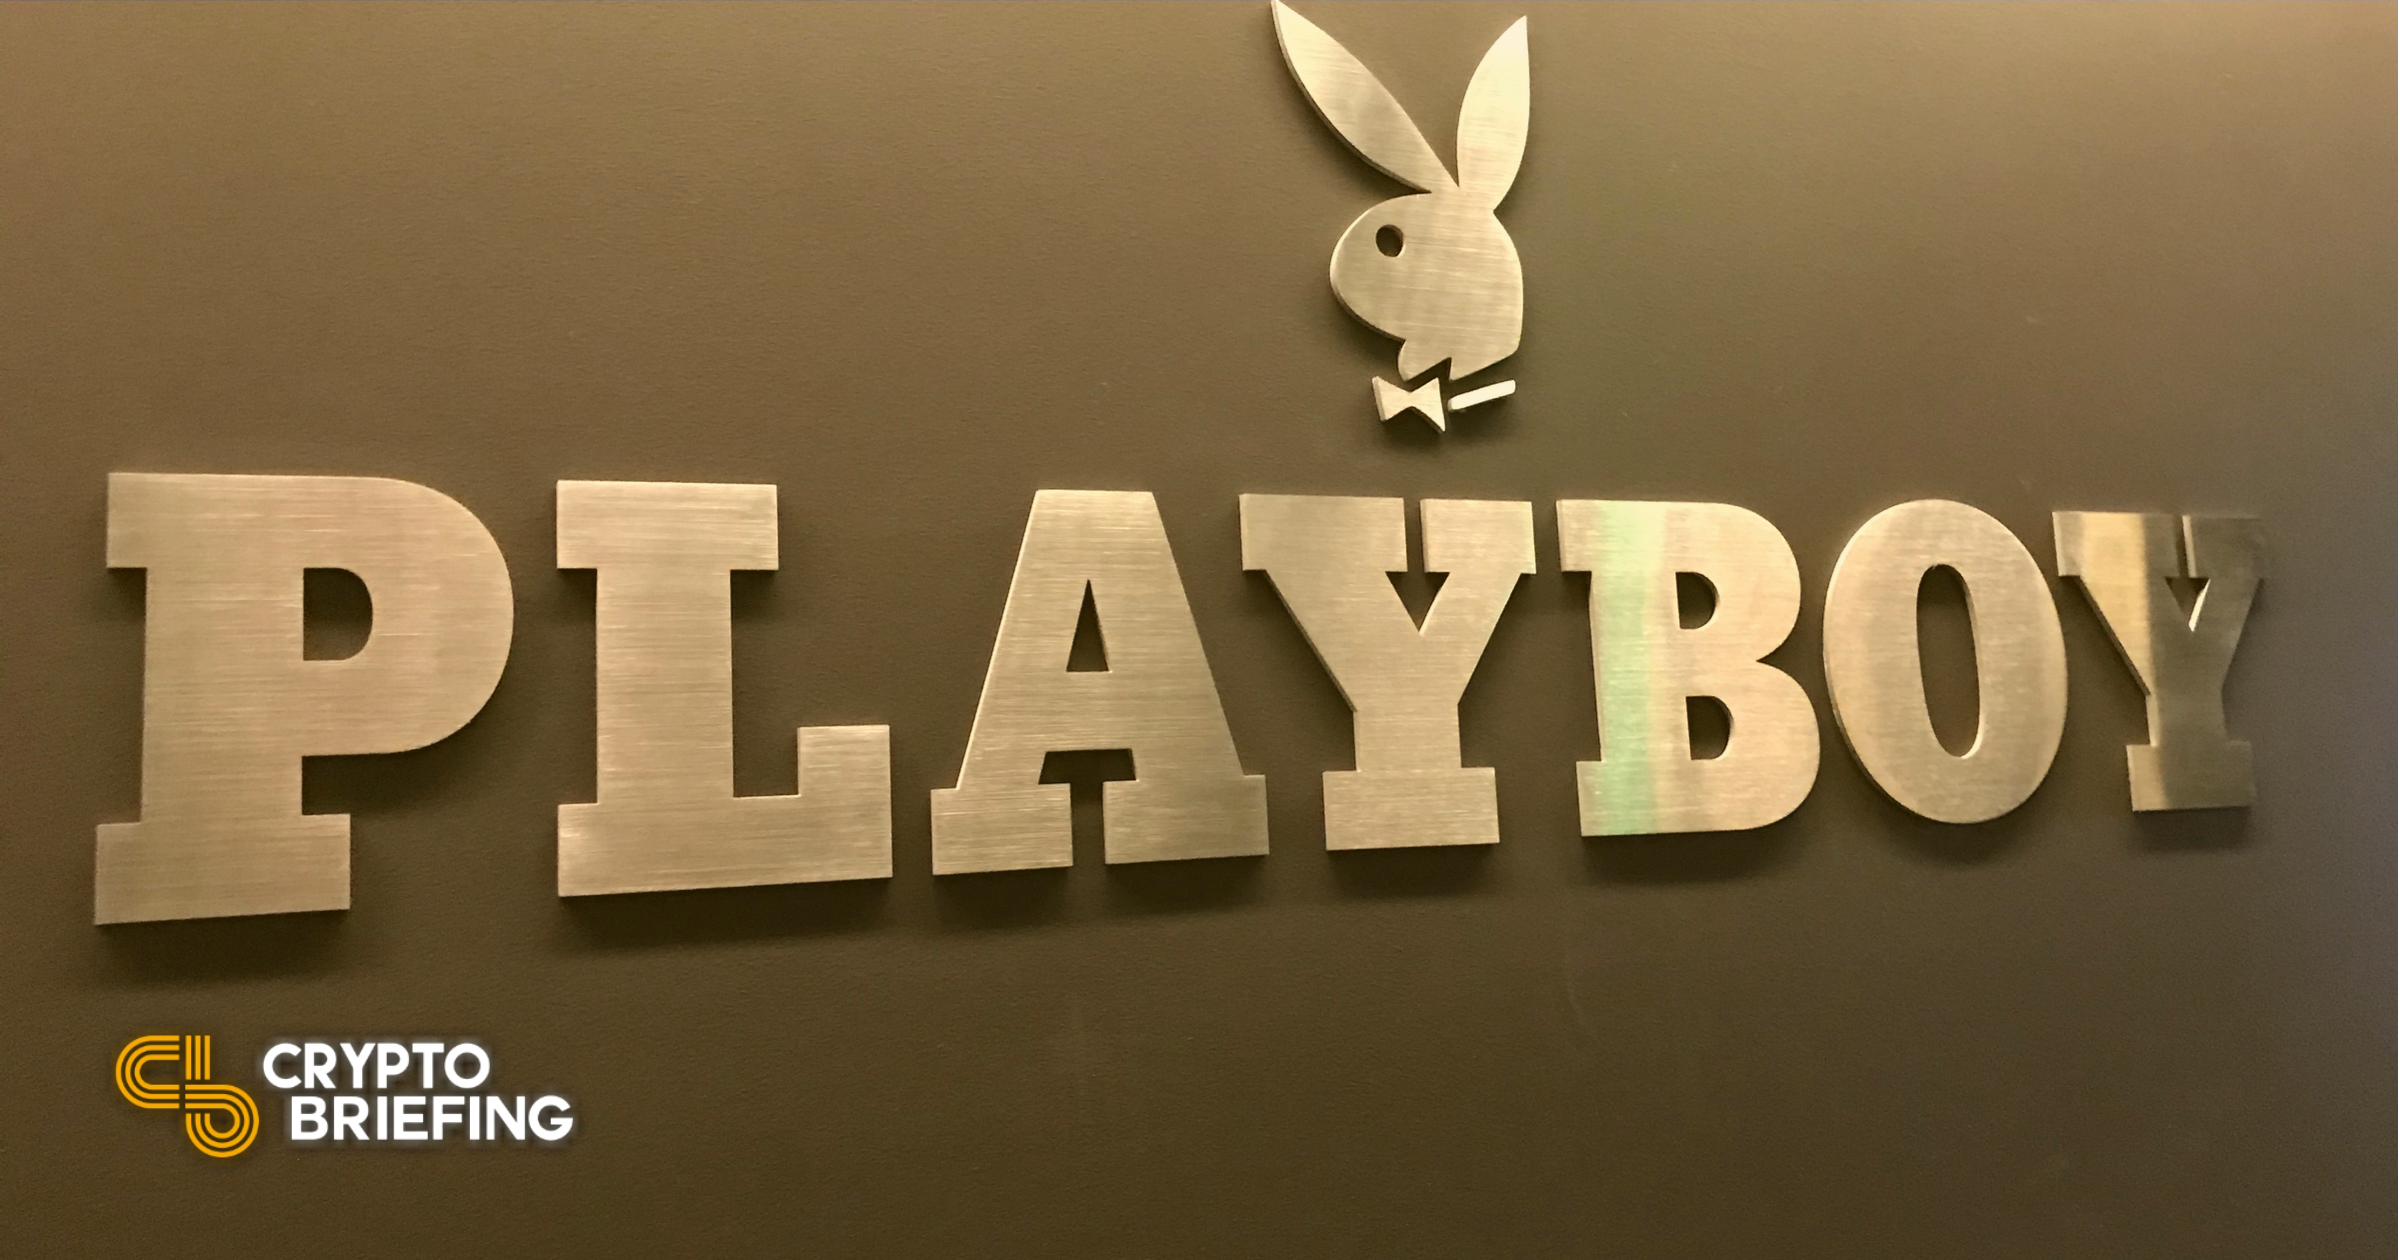 Playboy Partners With Nifty Gateway NFT Platform